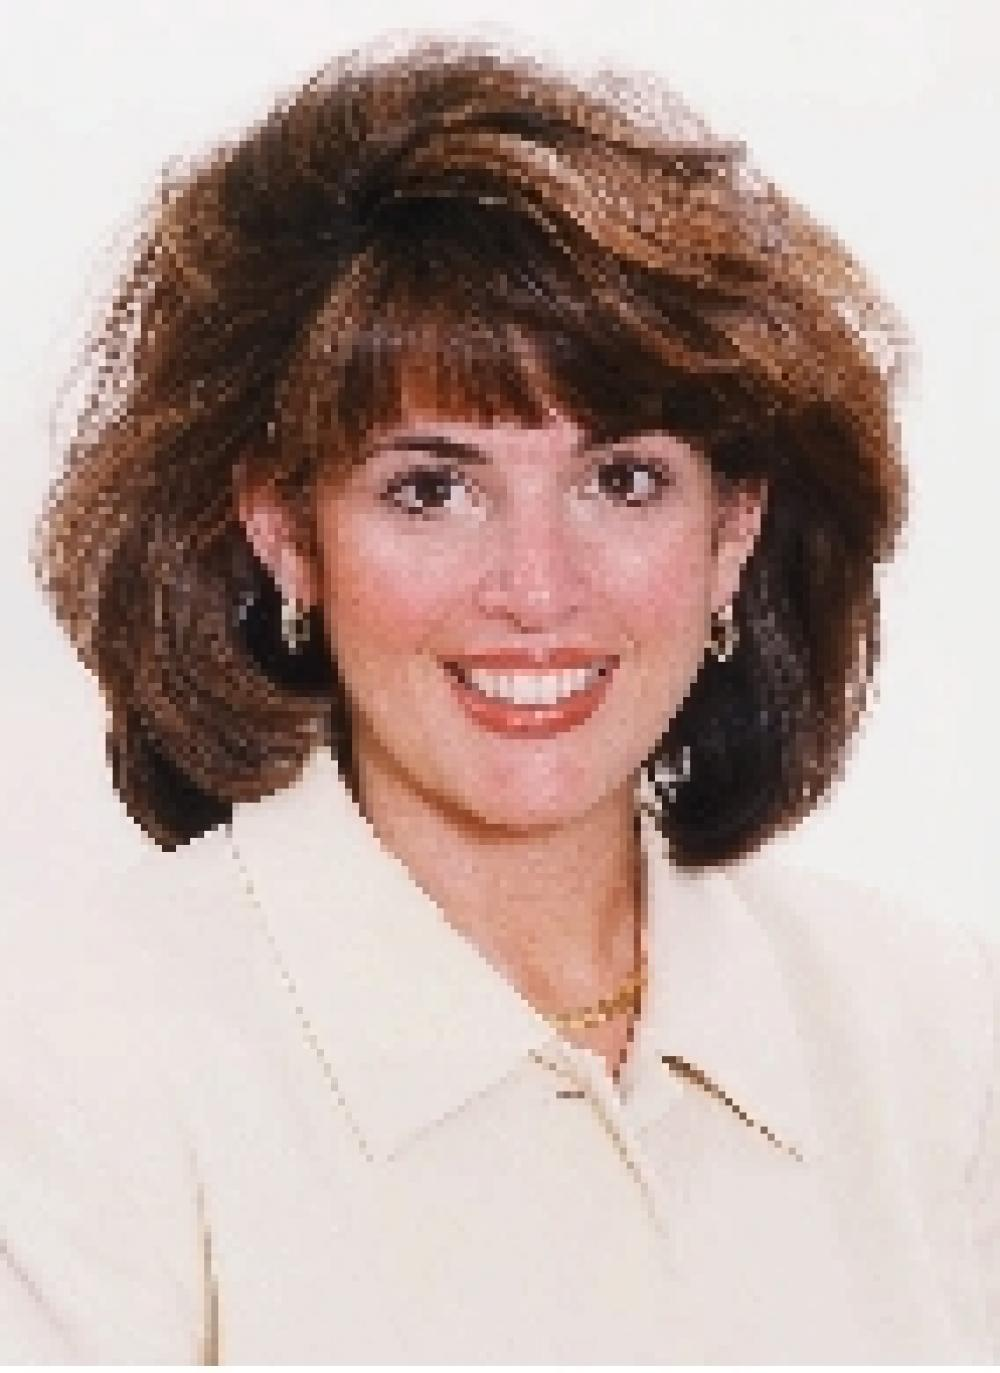 Susan Frasca, President, CEO and Sole Proprietor, Frasca Hospitality Group, Chicago, IL